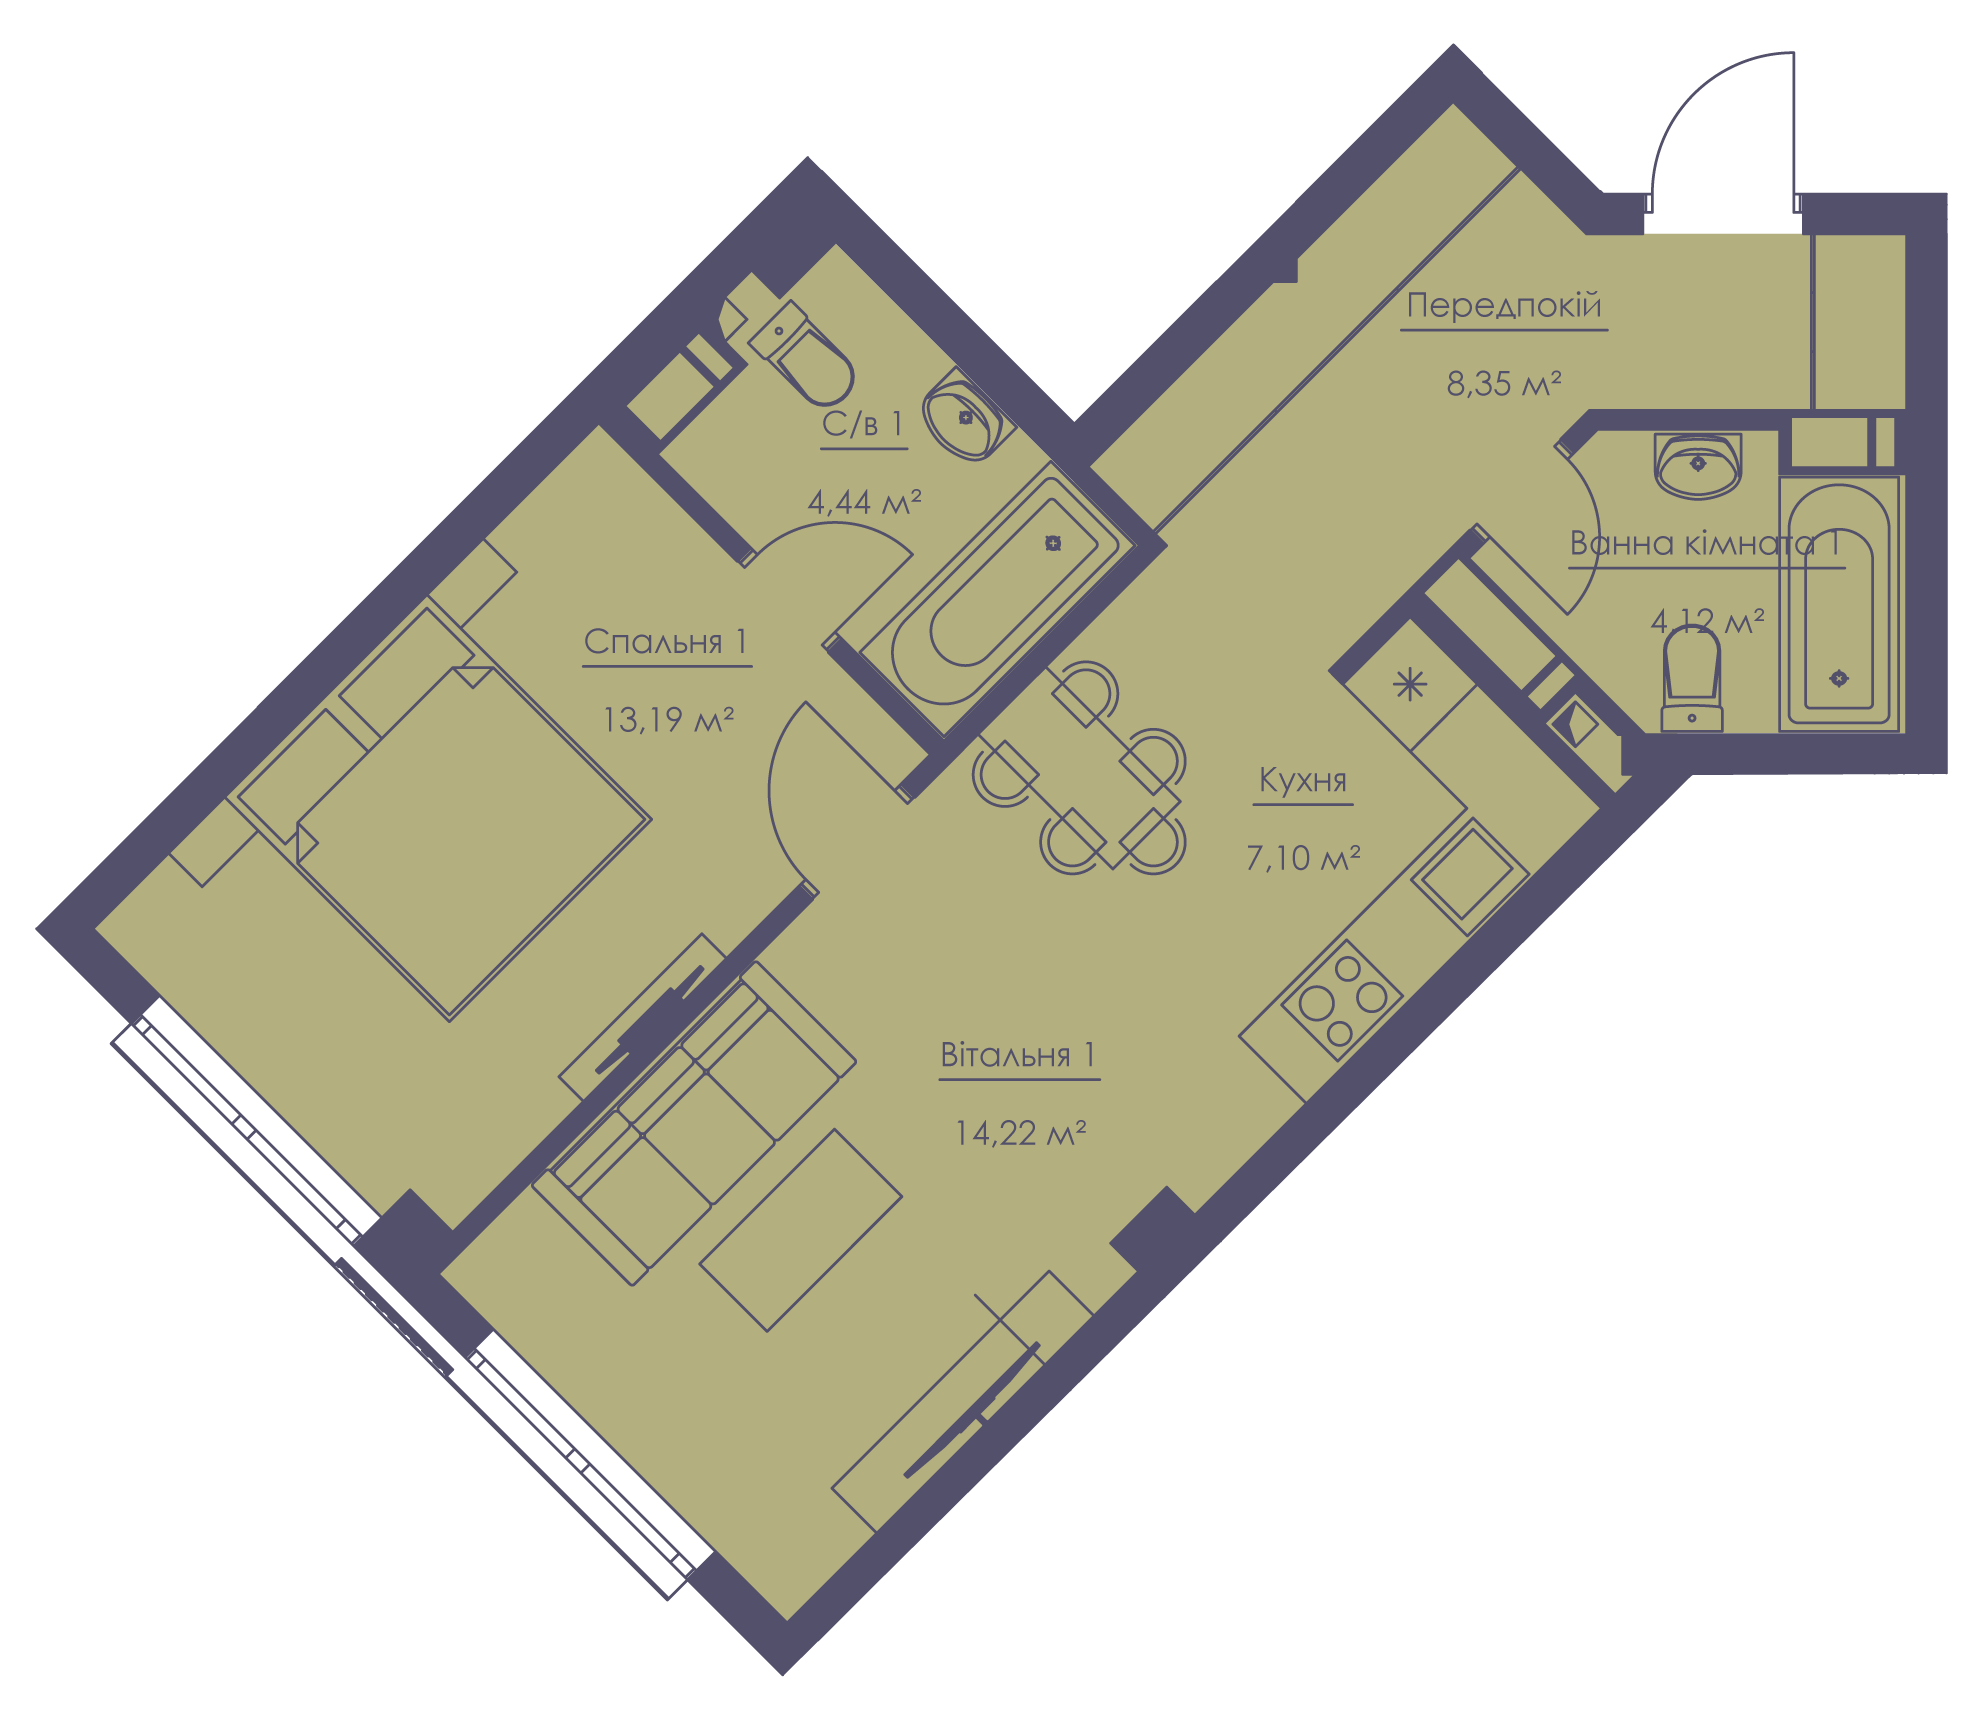 Apartment layout KV_115_3.2m_1_1_3-1